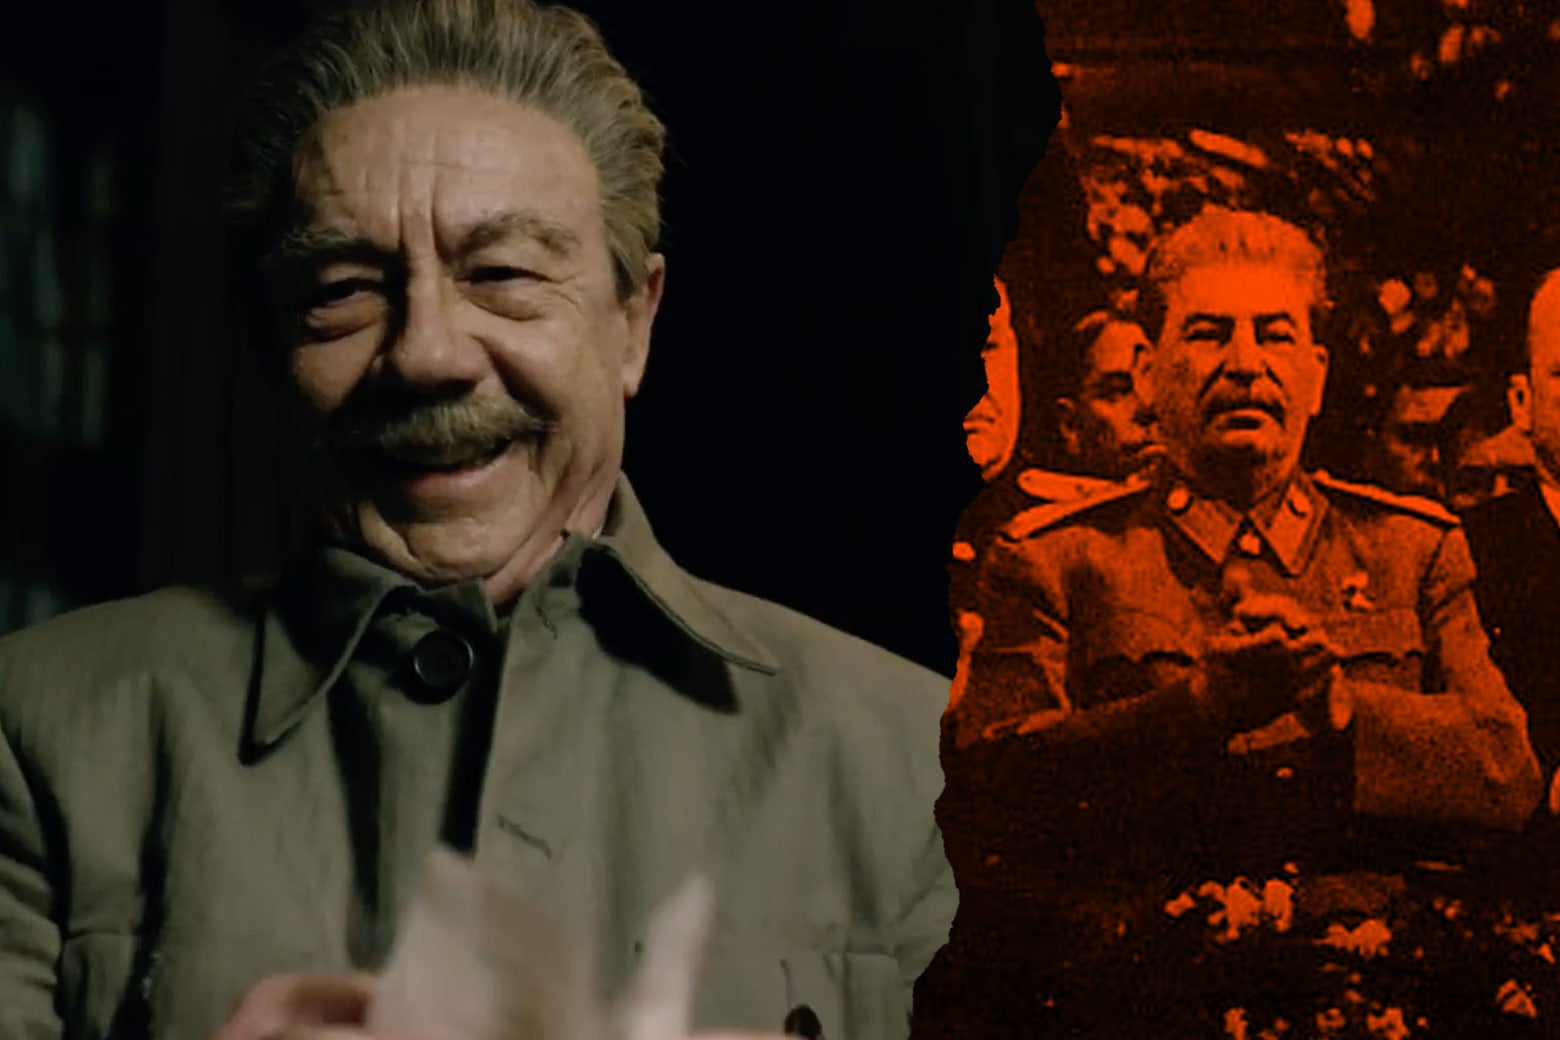 At left: Adrian McLoughlin as Josef Stalin in the film. At right: the real Josef Stalin.